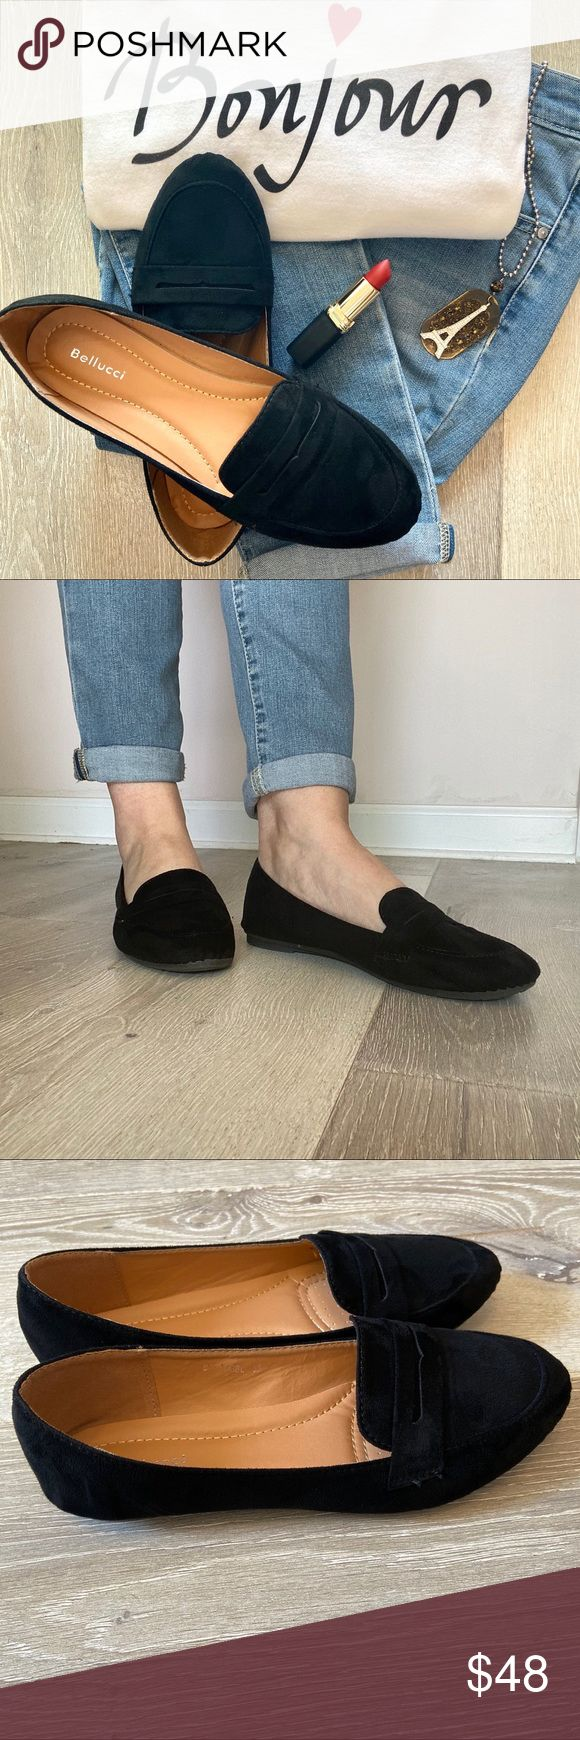 Bellucci Black Suede Penny Loafer flats size 6.5 in 2020 ...